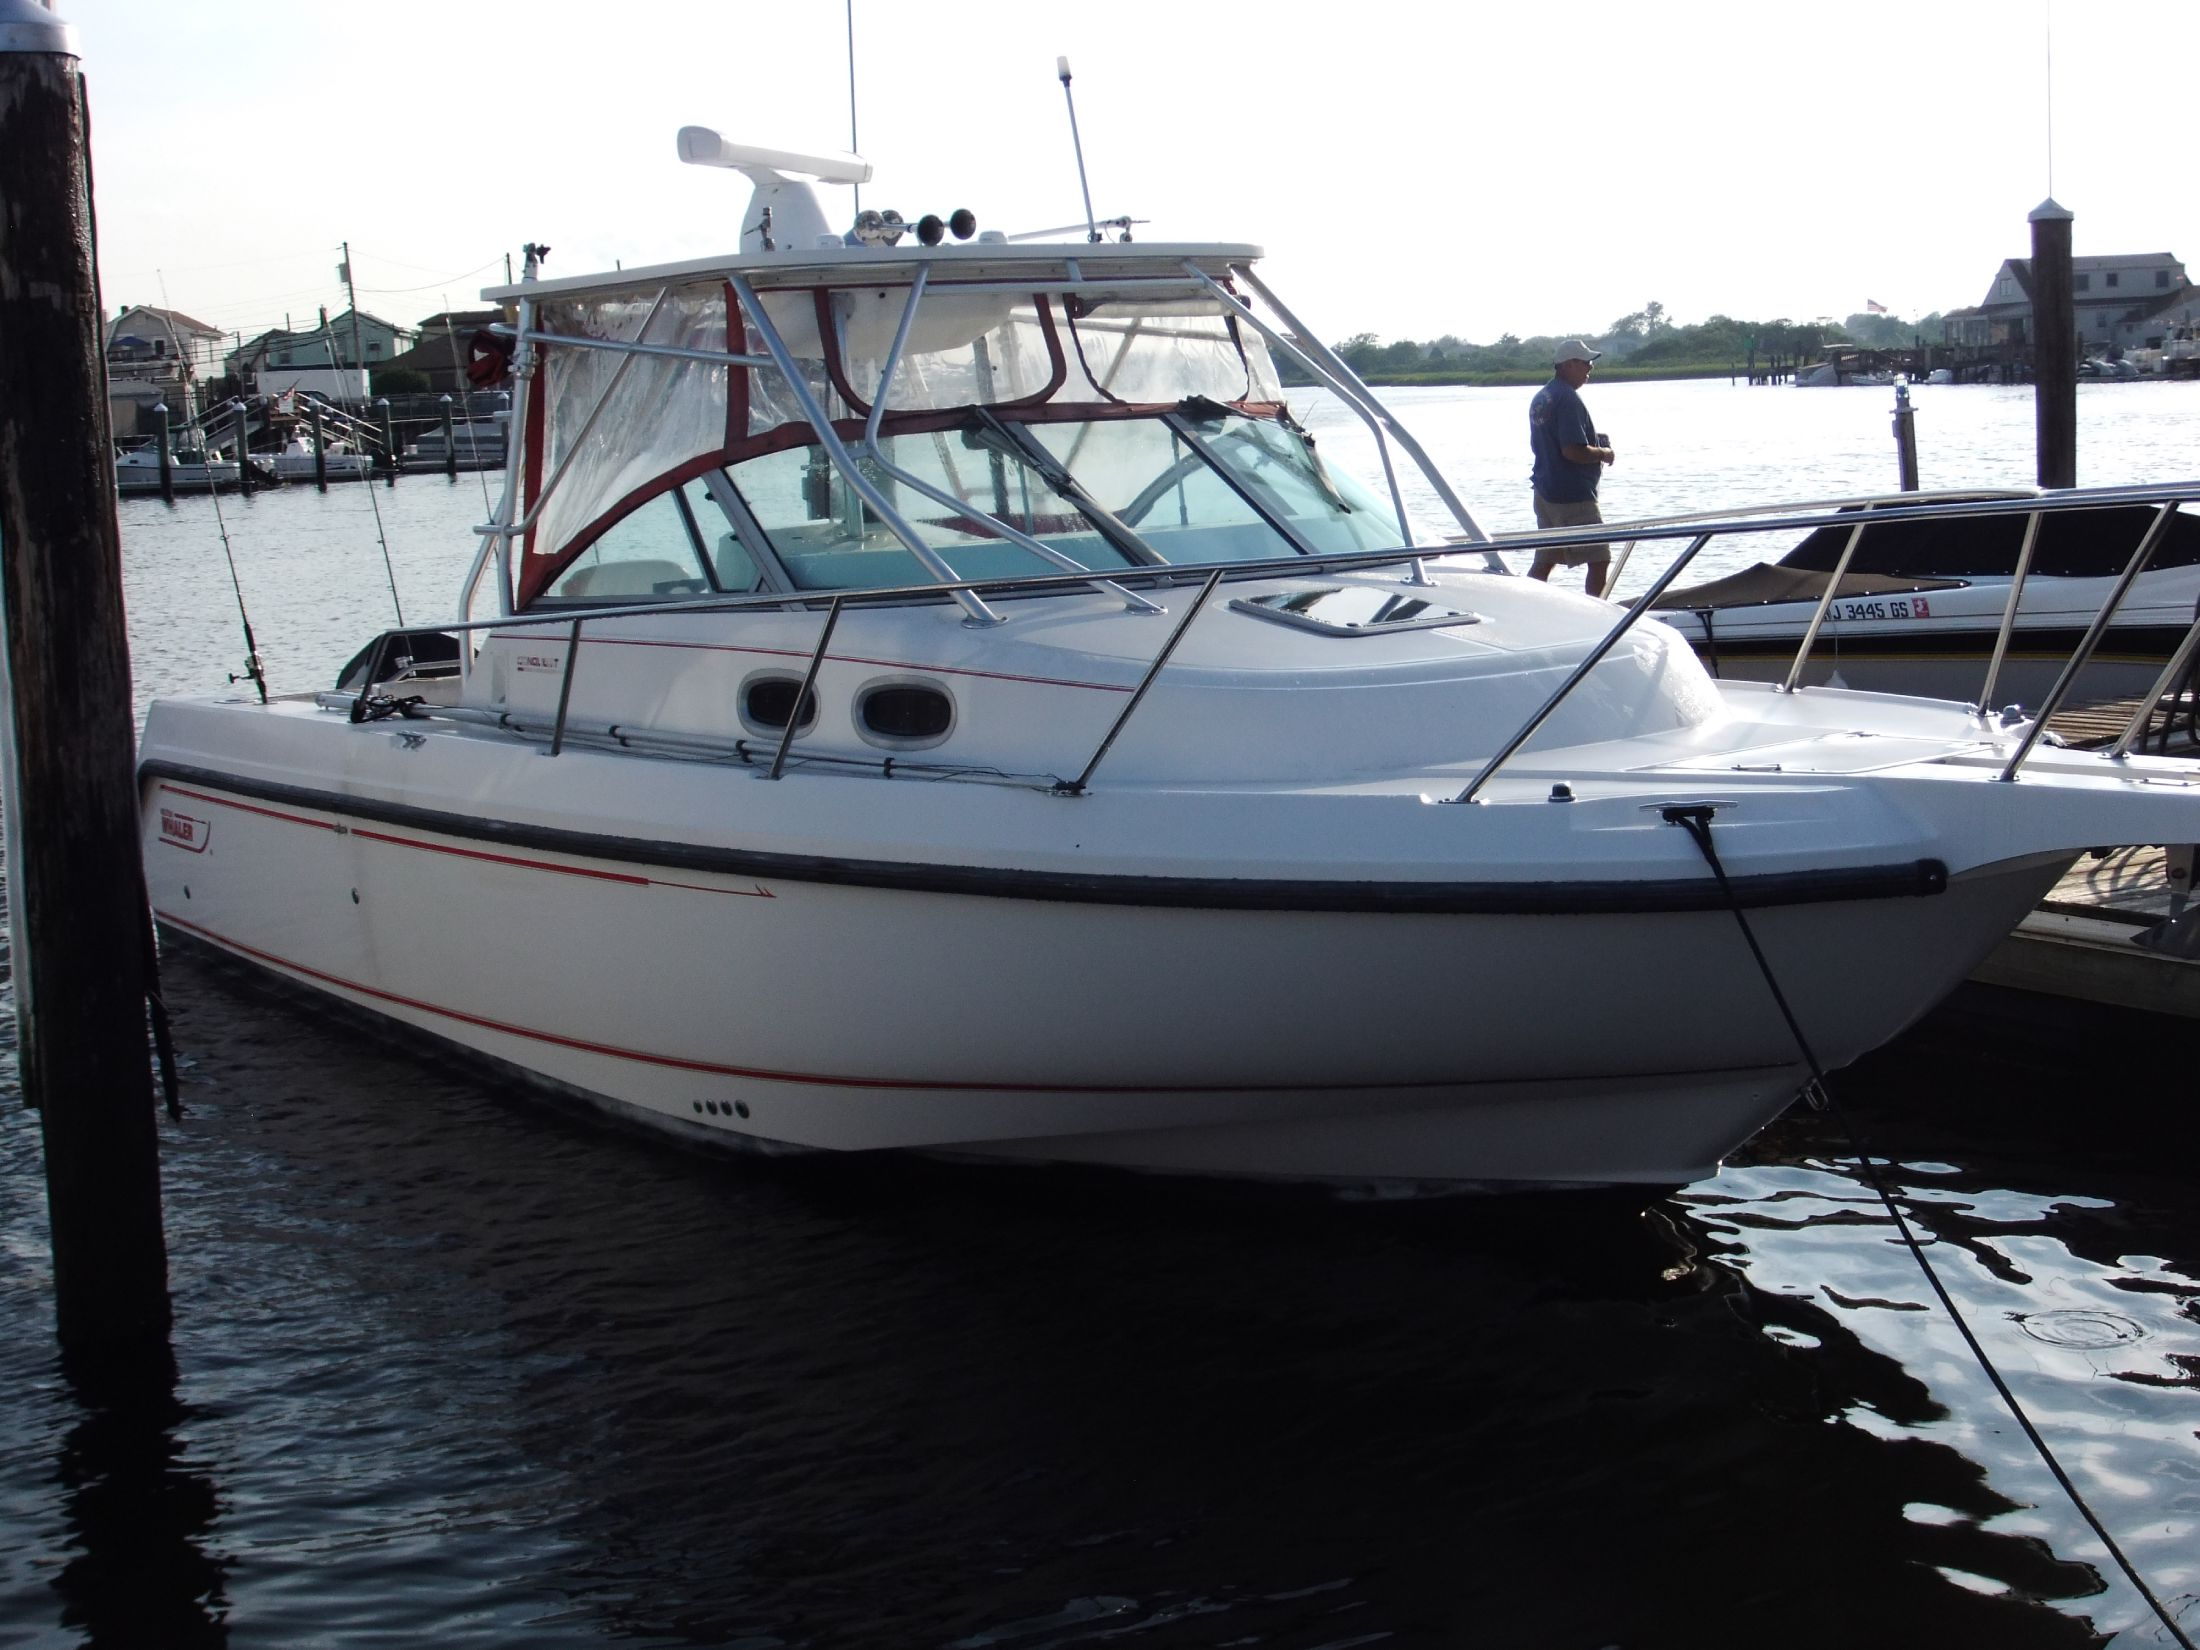 28 ft 2001 boston whaler 285 conquest wa (srg)